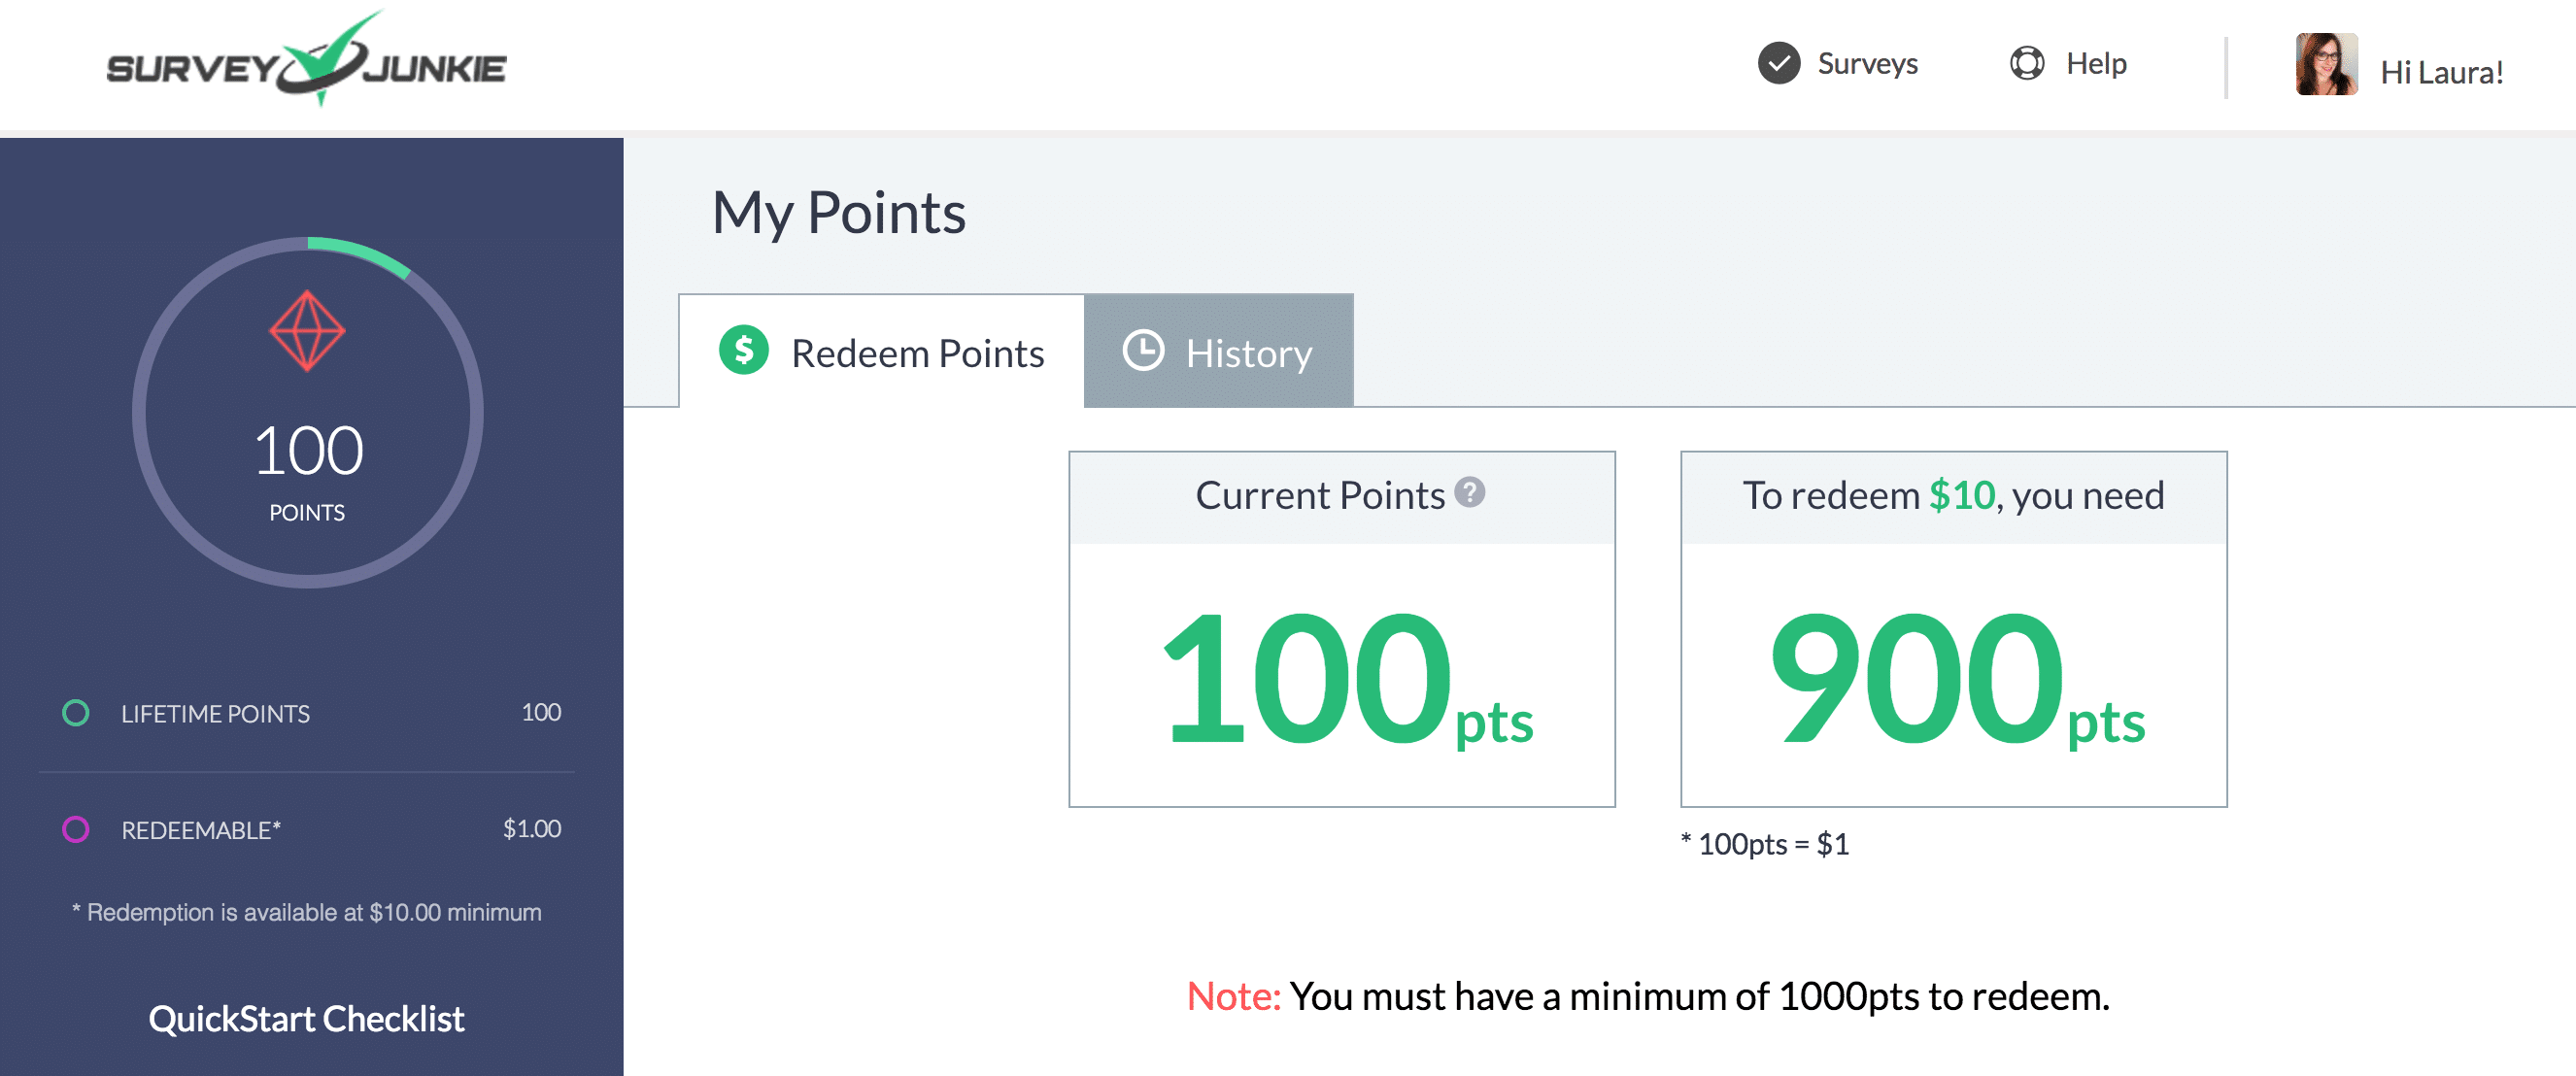 survey junkie review my points